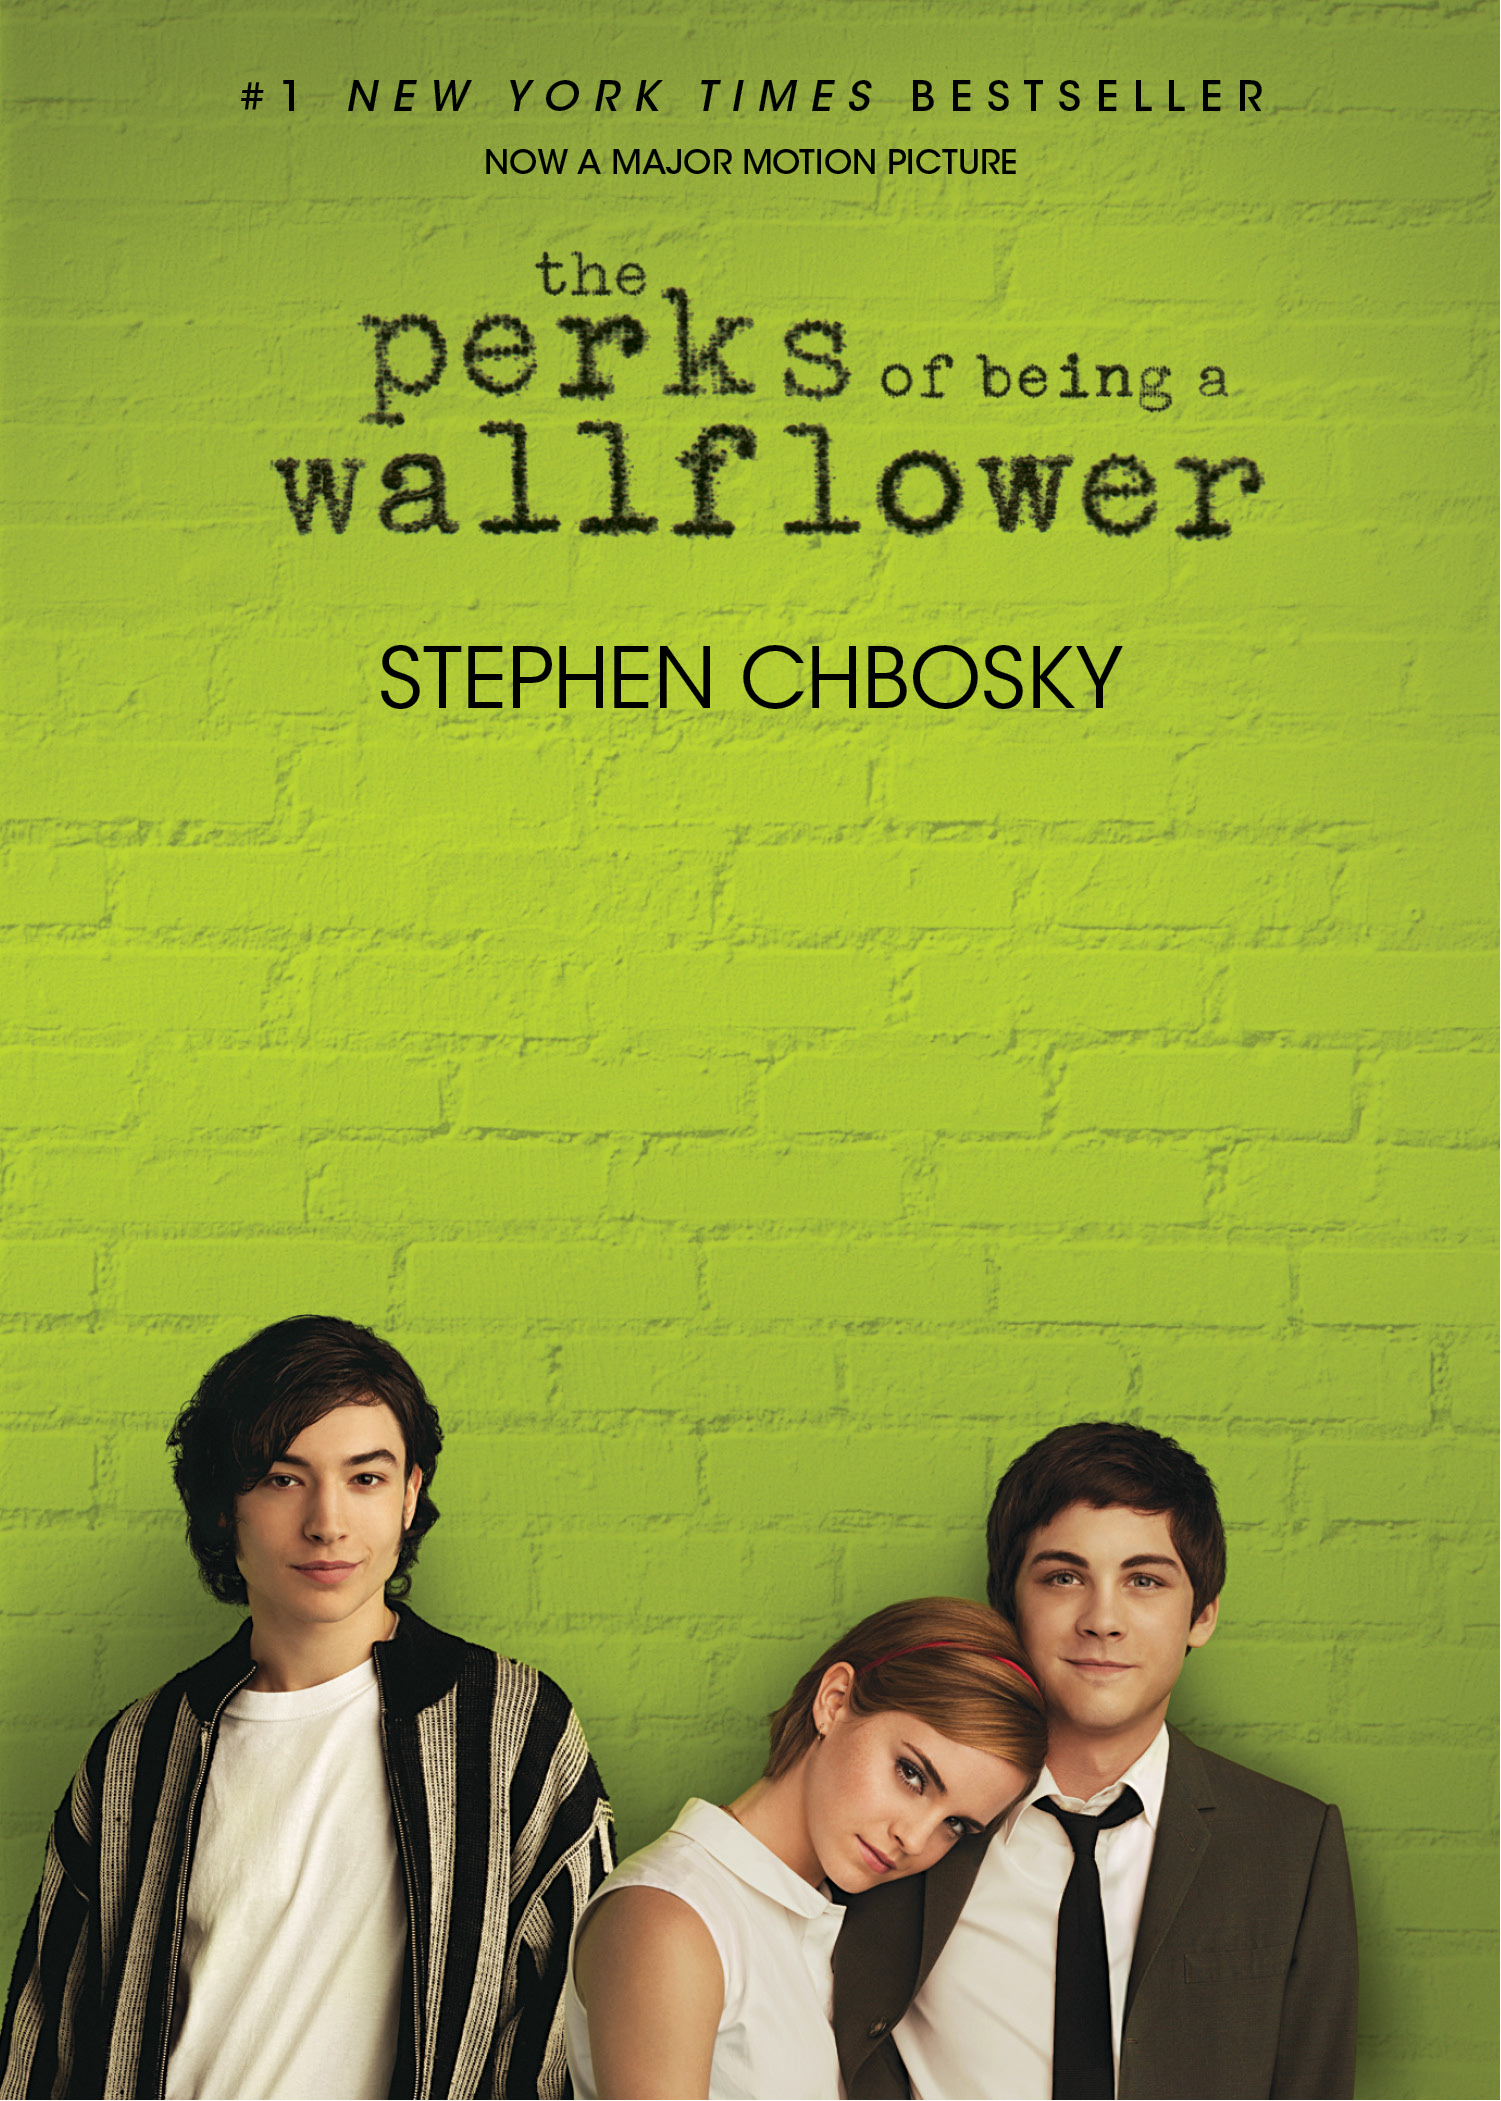 stephen chbosky books list